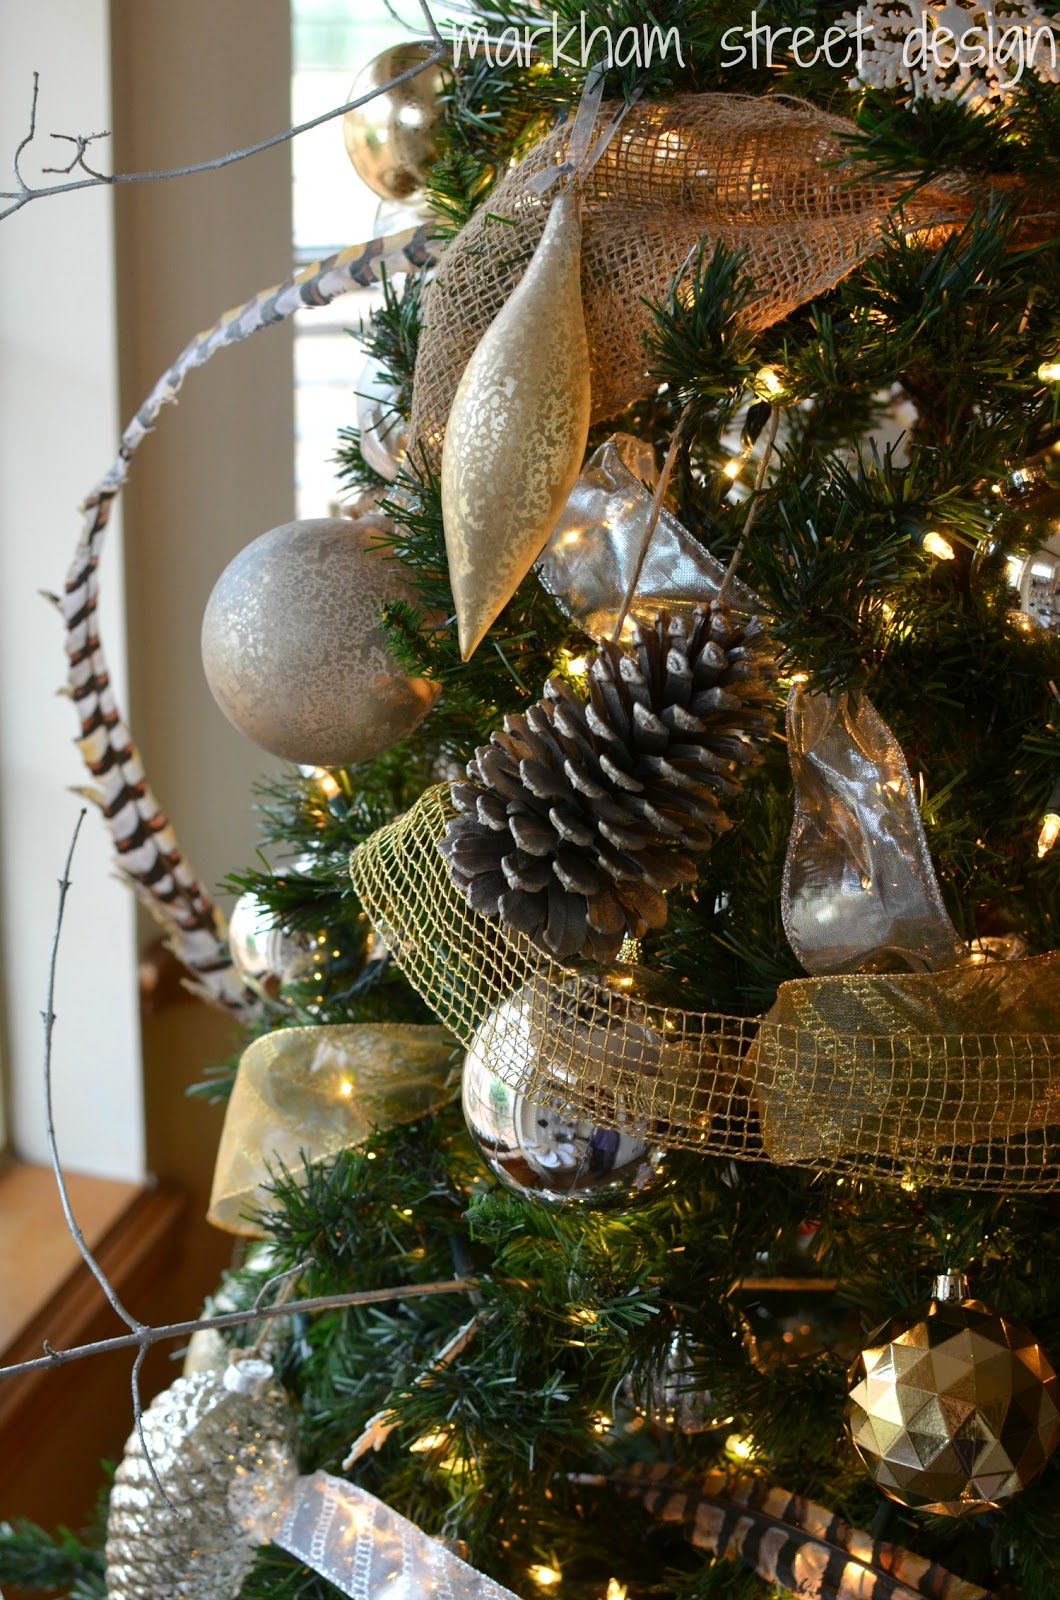 Laura orr interiors rustic glam christmas tree silver mercury glass and rustic ornaments although i did surprise myself with a few new ornaments that i forgot i bought after christmas last year solutioingenieria Image collections